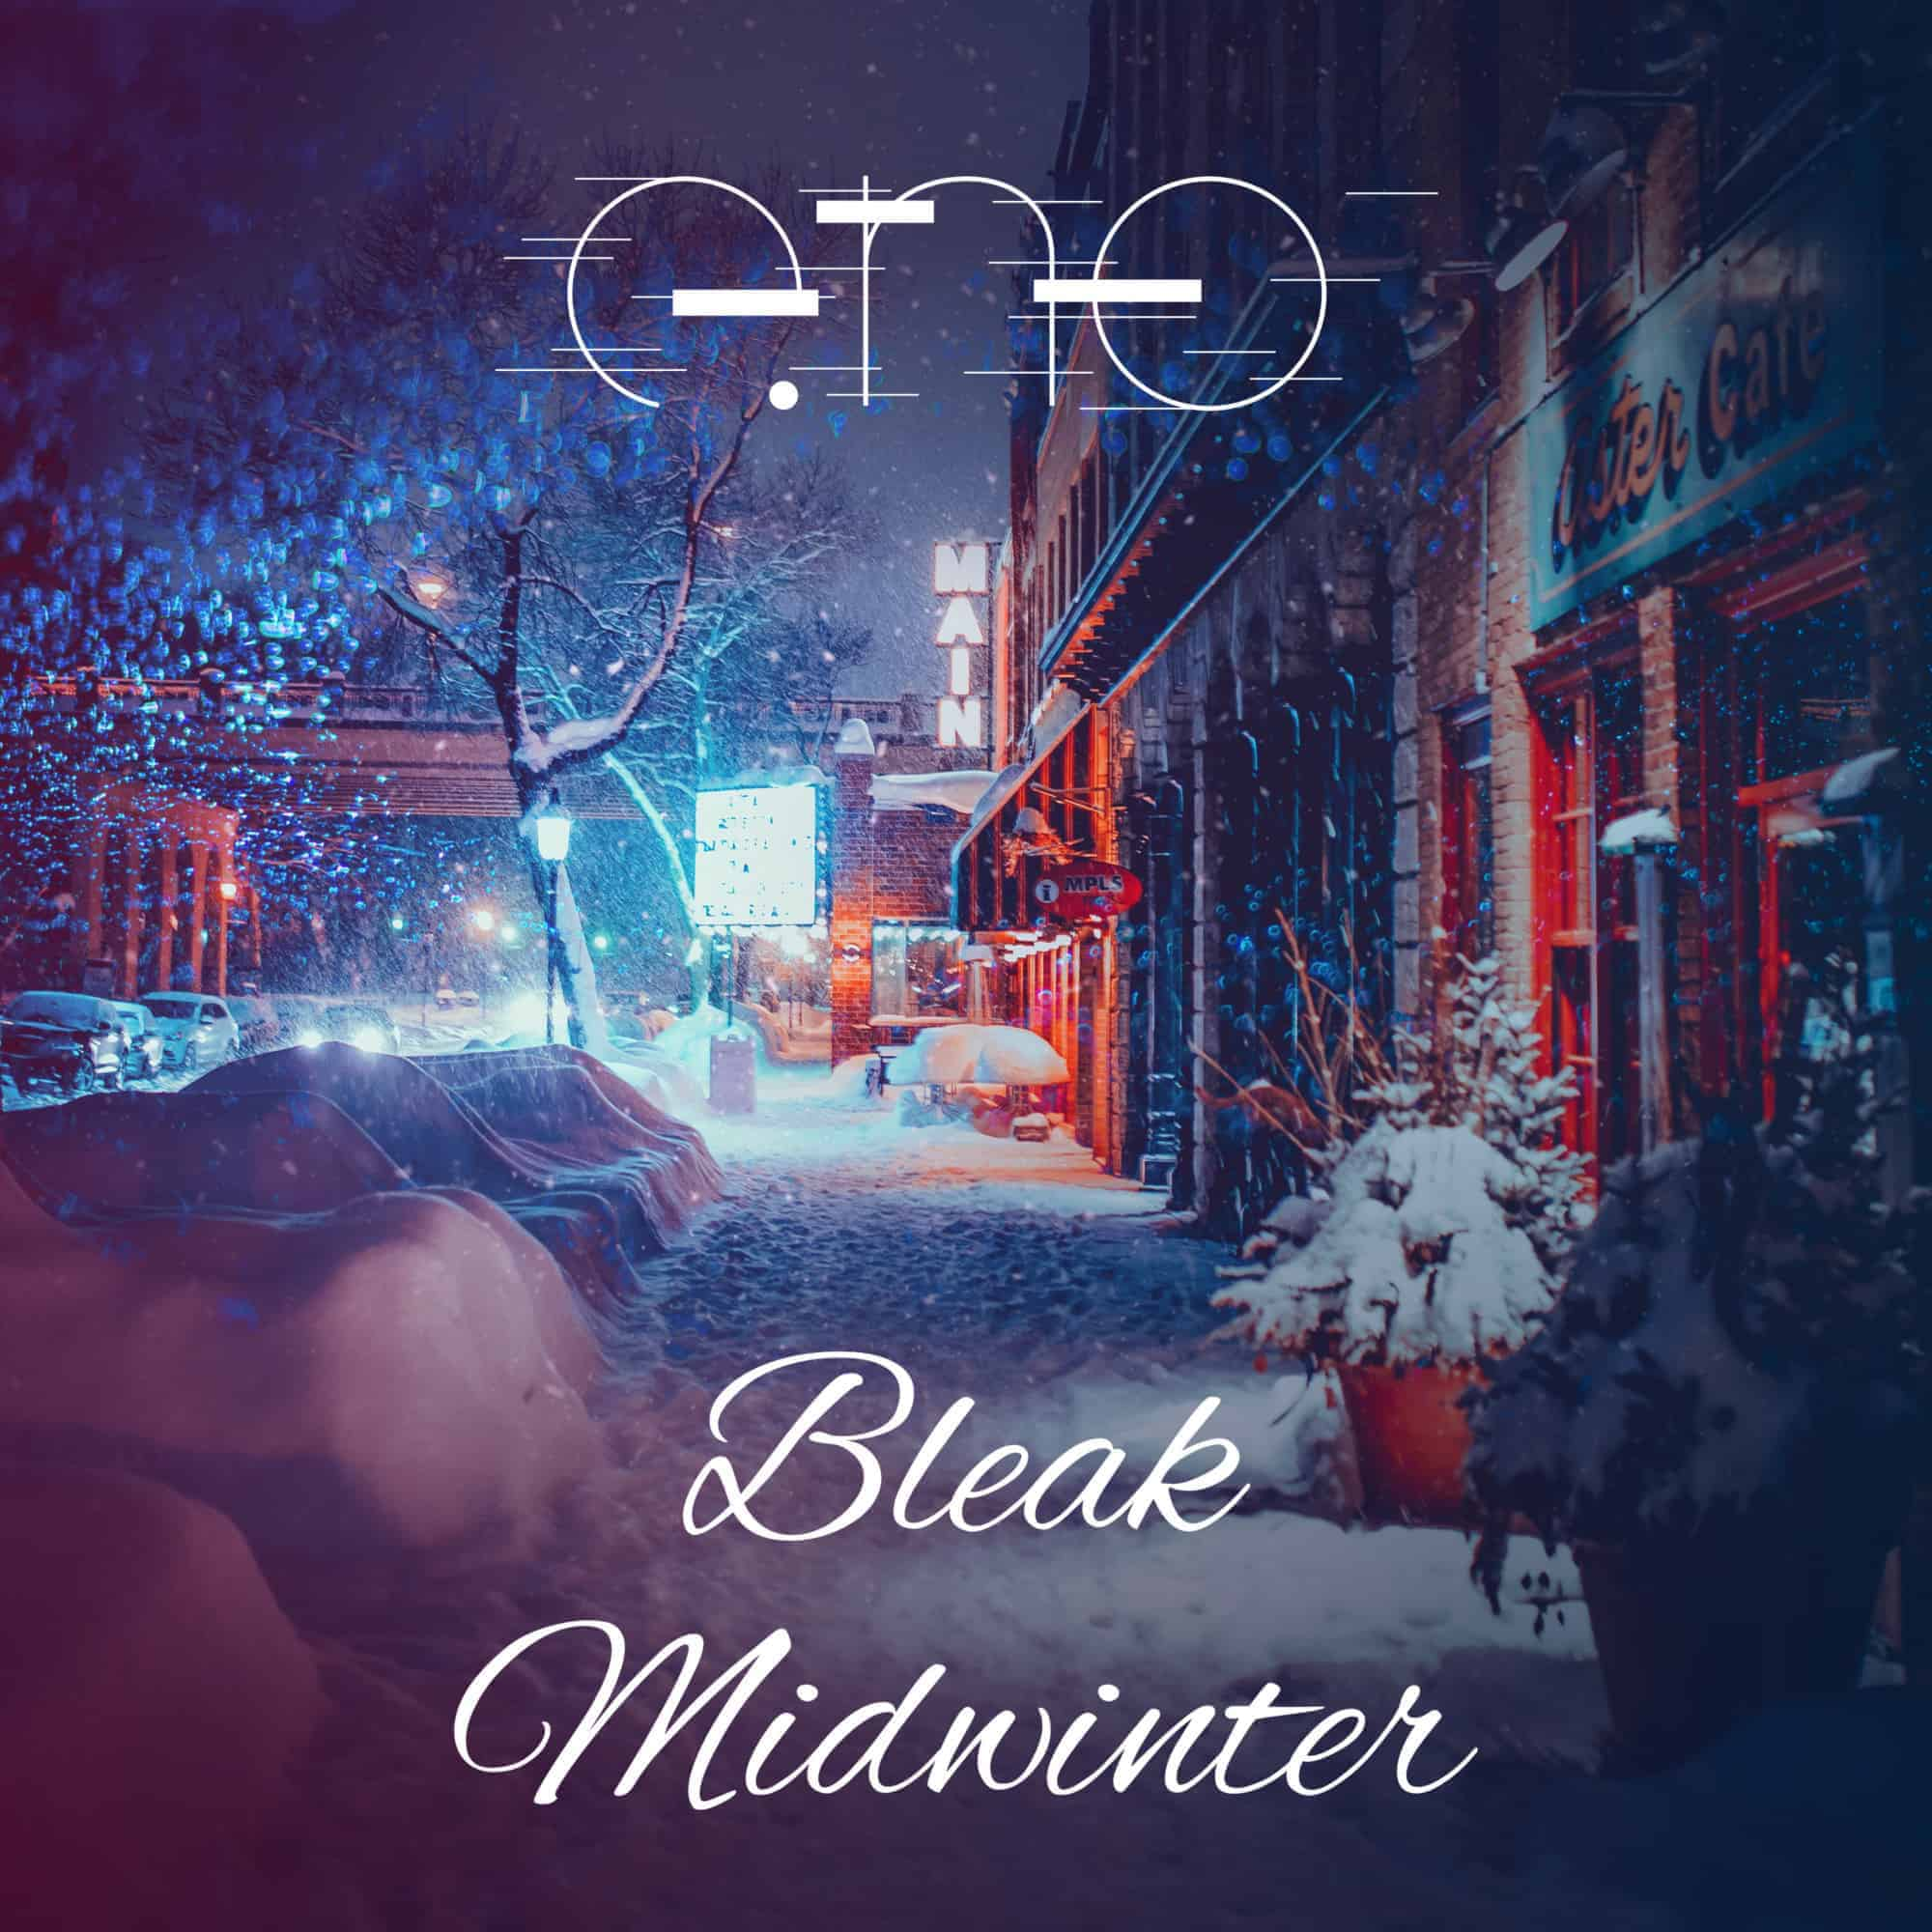 e.no - Bleak Midwinter